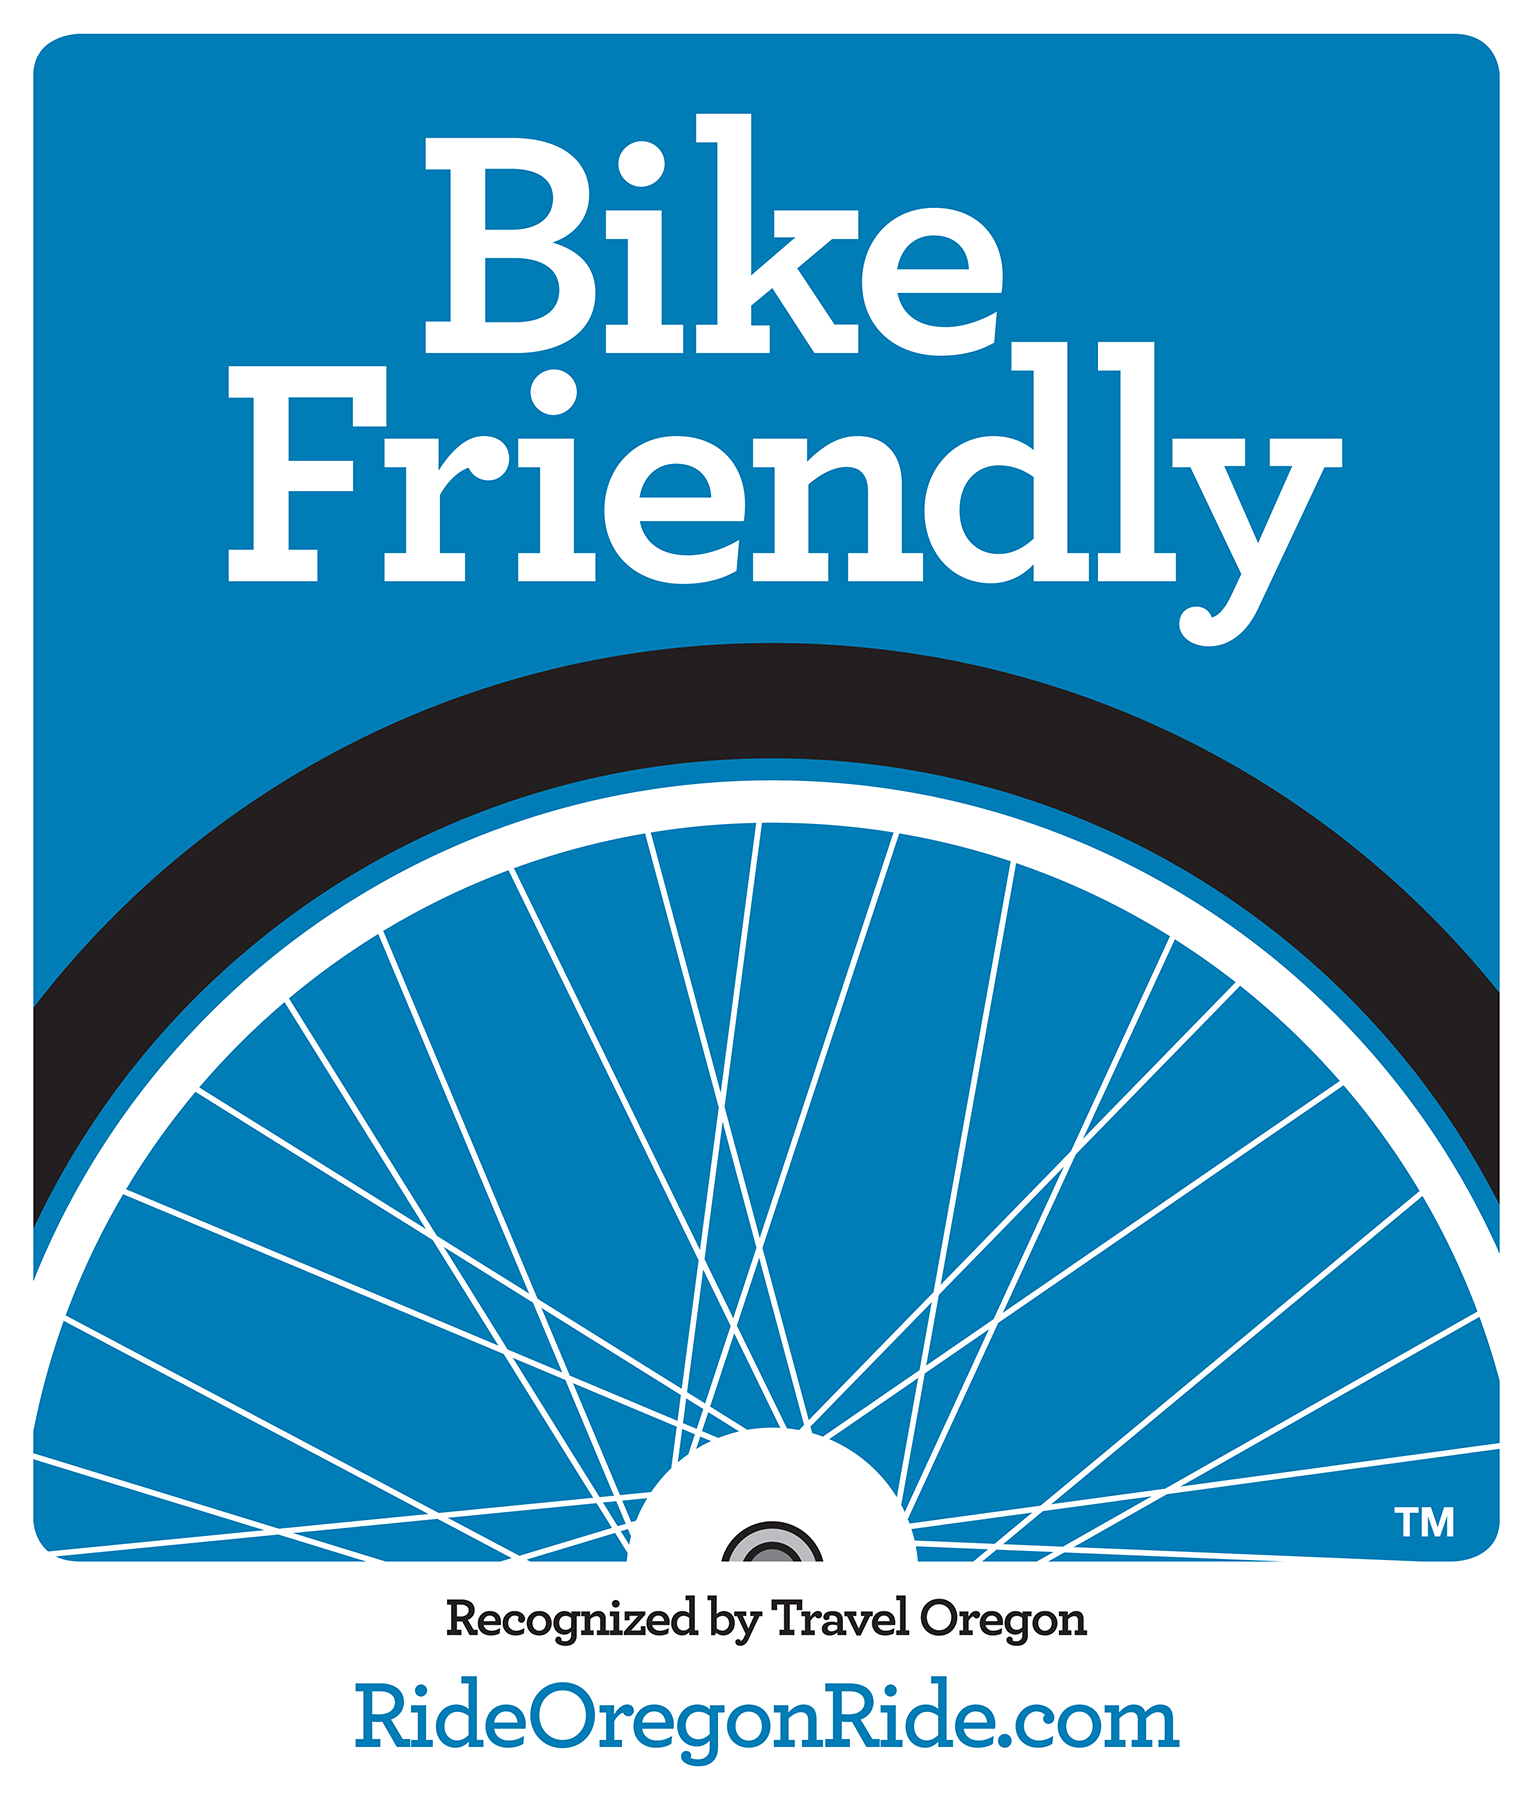 Travel Oregon Bike Friendly